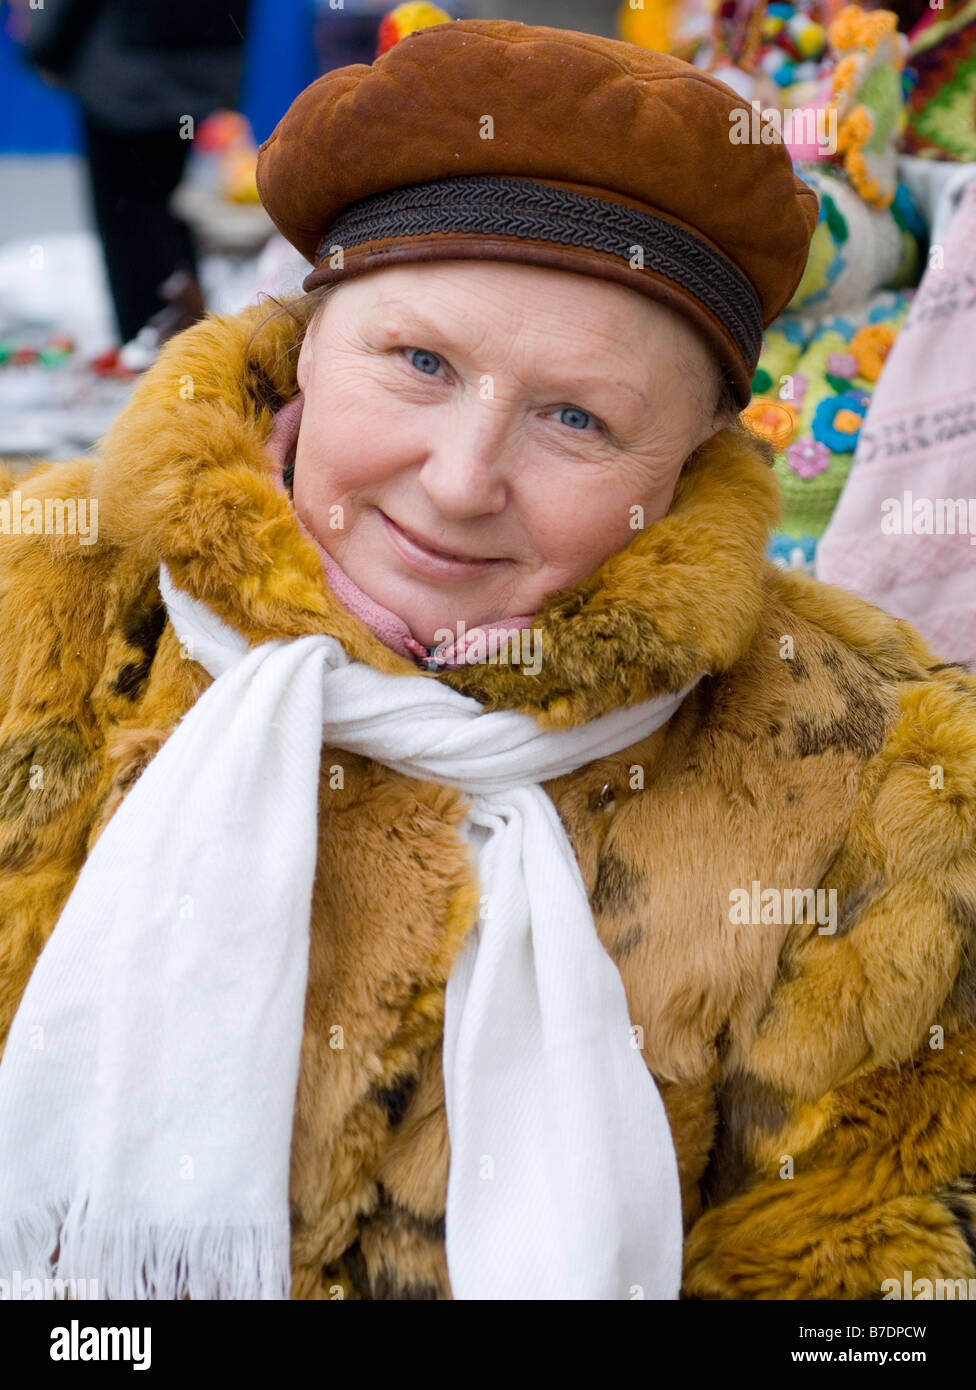 Kiev lady in craft market, Ukraine. Fur coat and winter attire. - Stock Image